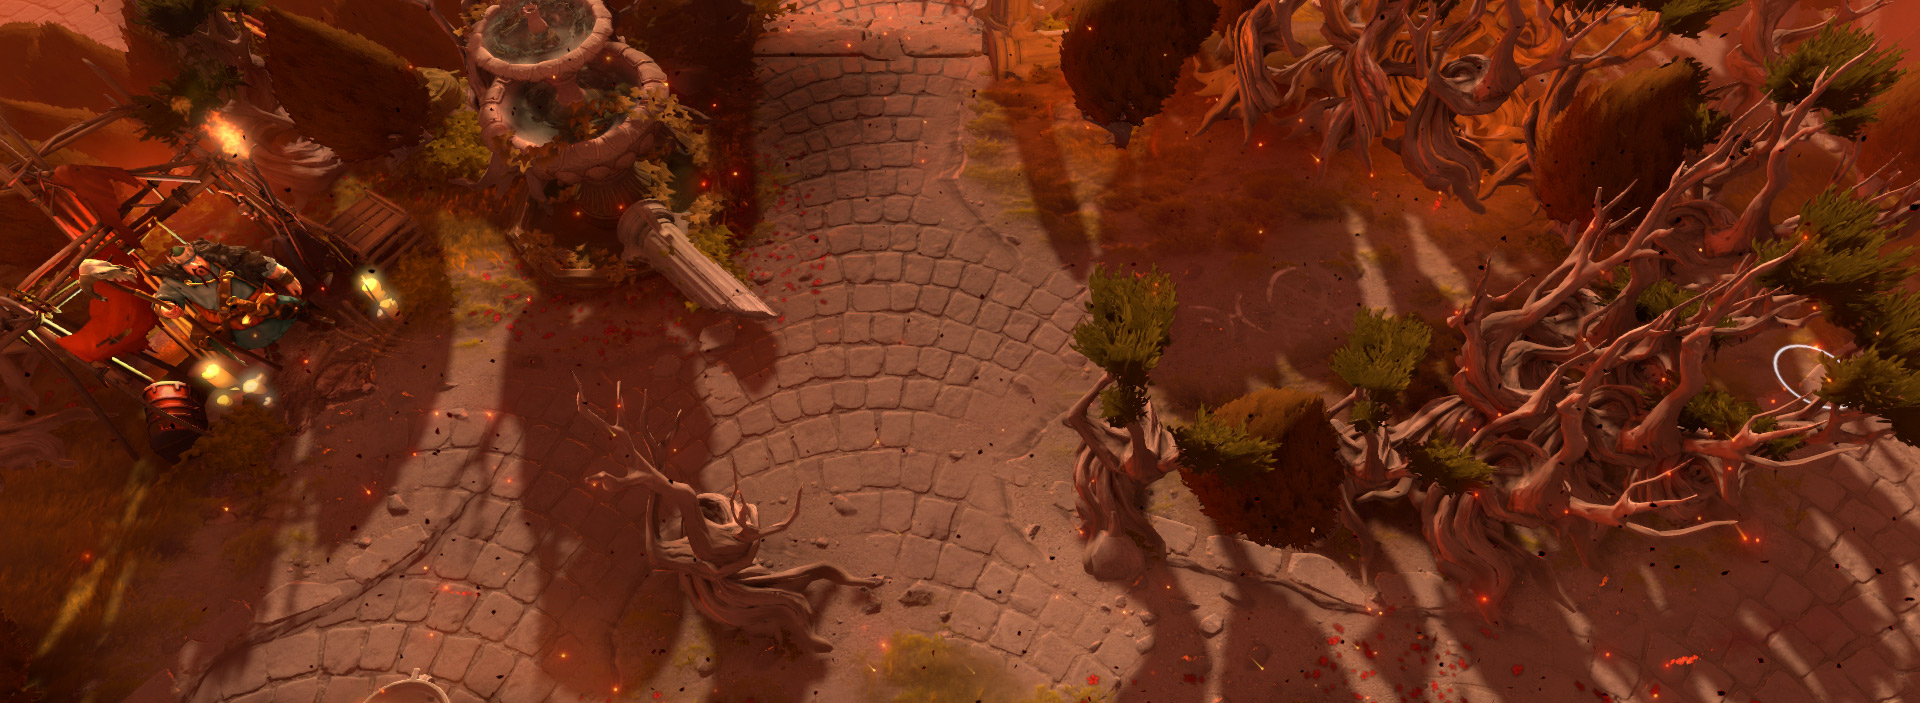 Immortal Gardens Weather Ash Preview 3.jpg